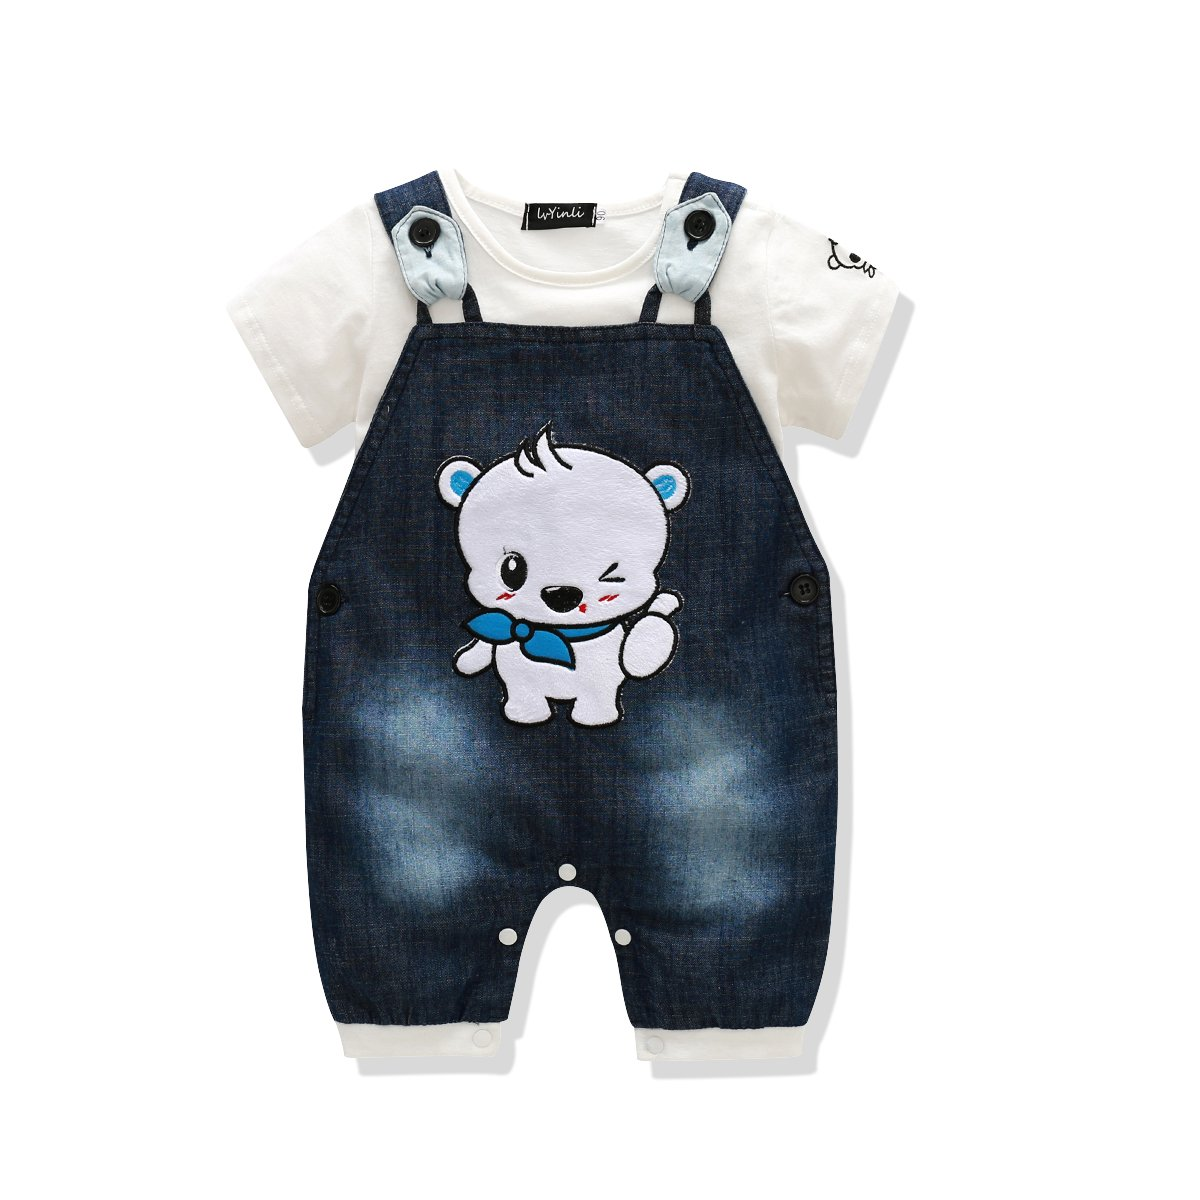 57f14198449cc Galleon - Cute Baby Boys Clothes Toddler Boys' Romper Jumpsuit Overalls  Stripe Rompers Sets (2 Years, Blue 4)